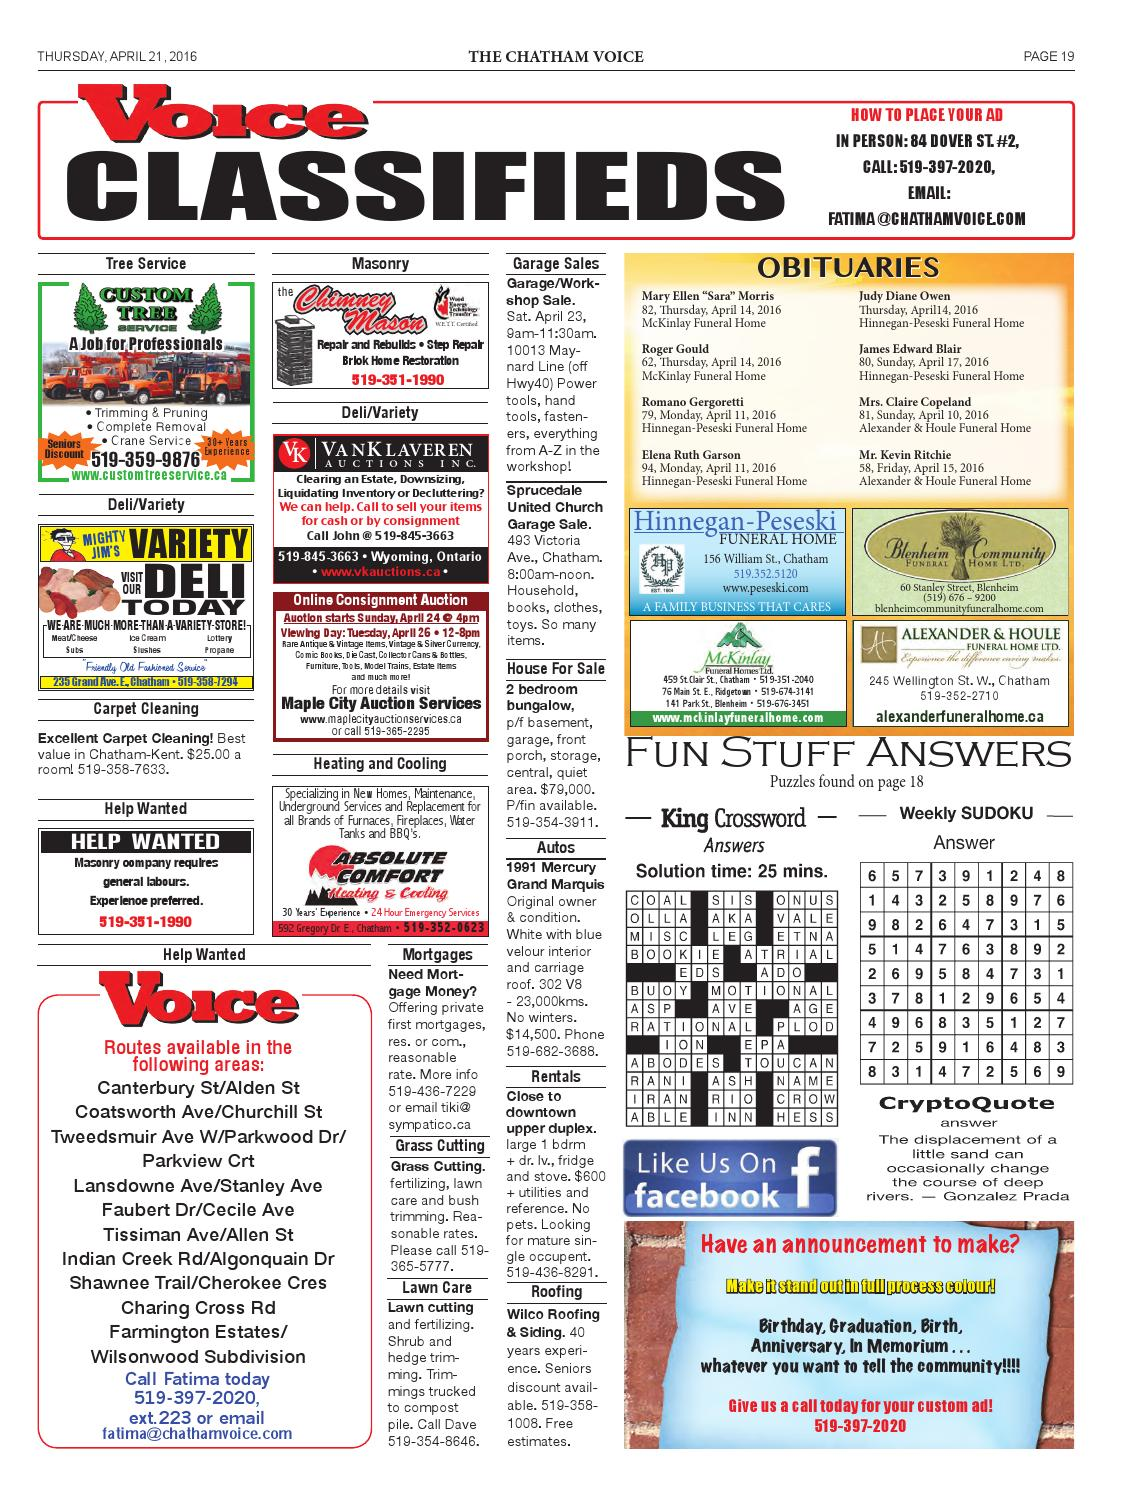 The Chatham Voice, April 21, 2016 by Chatham Voice - issuu